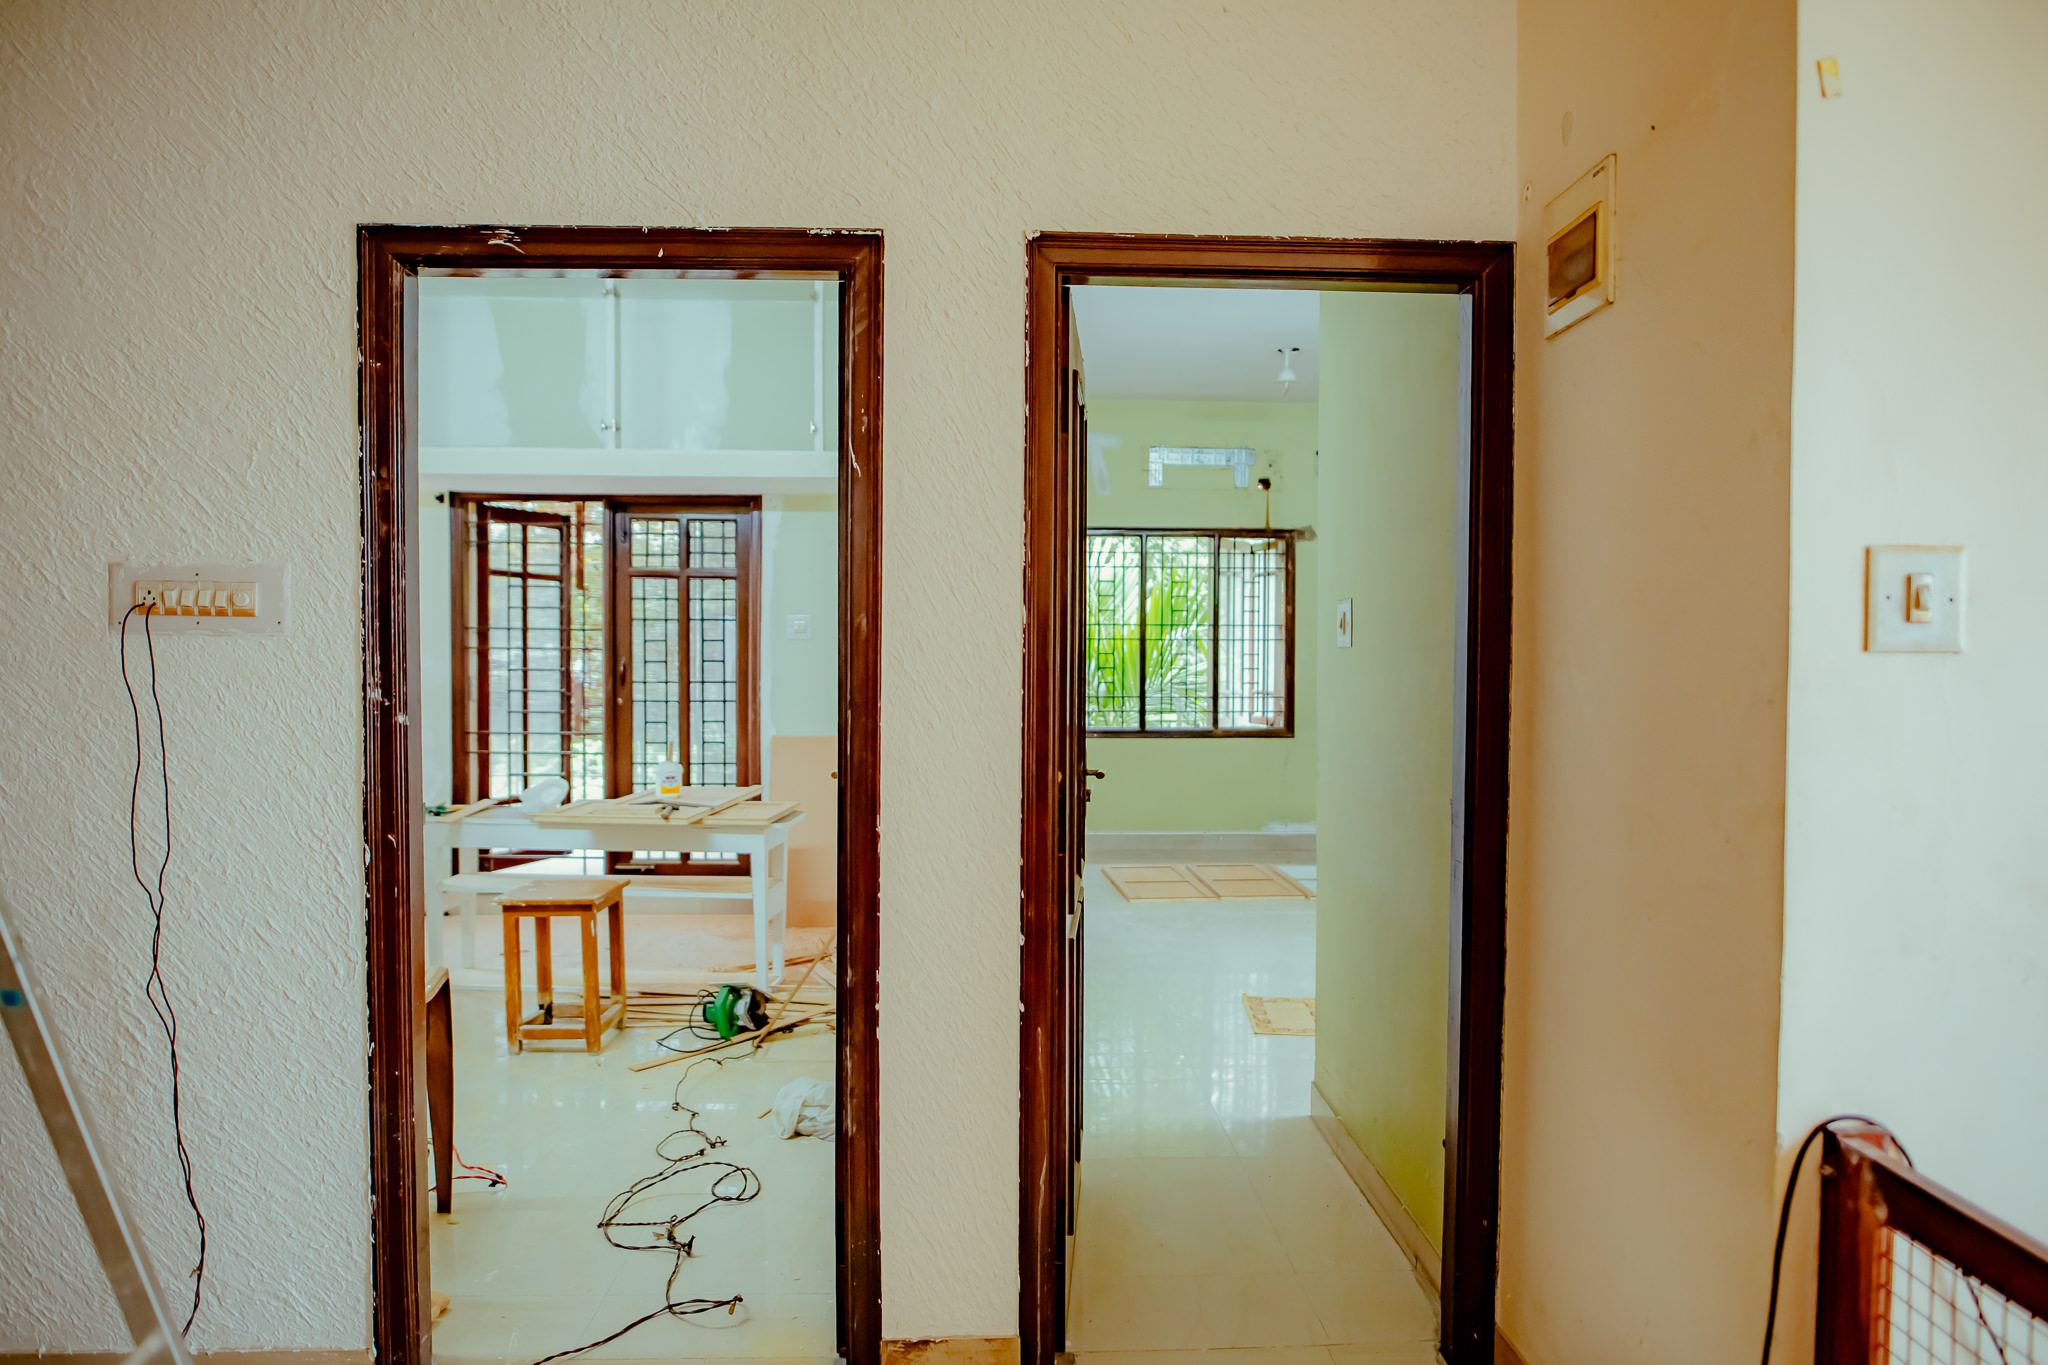 Entrance to rooms (Before)